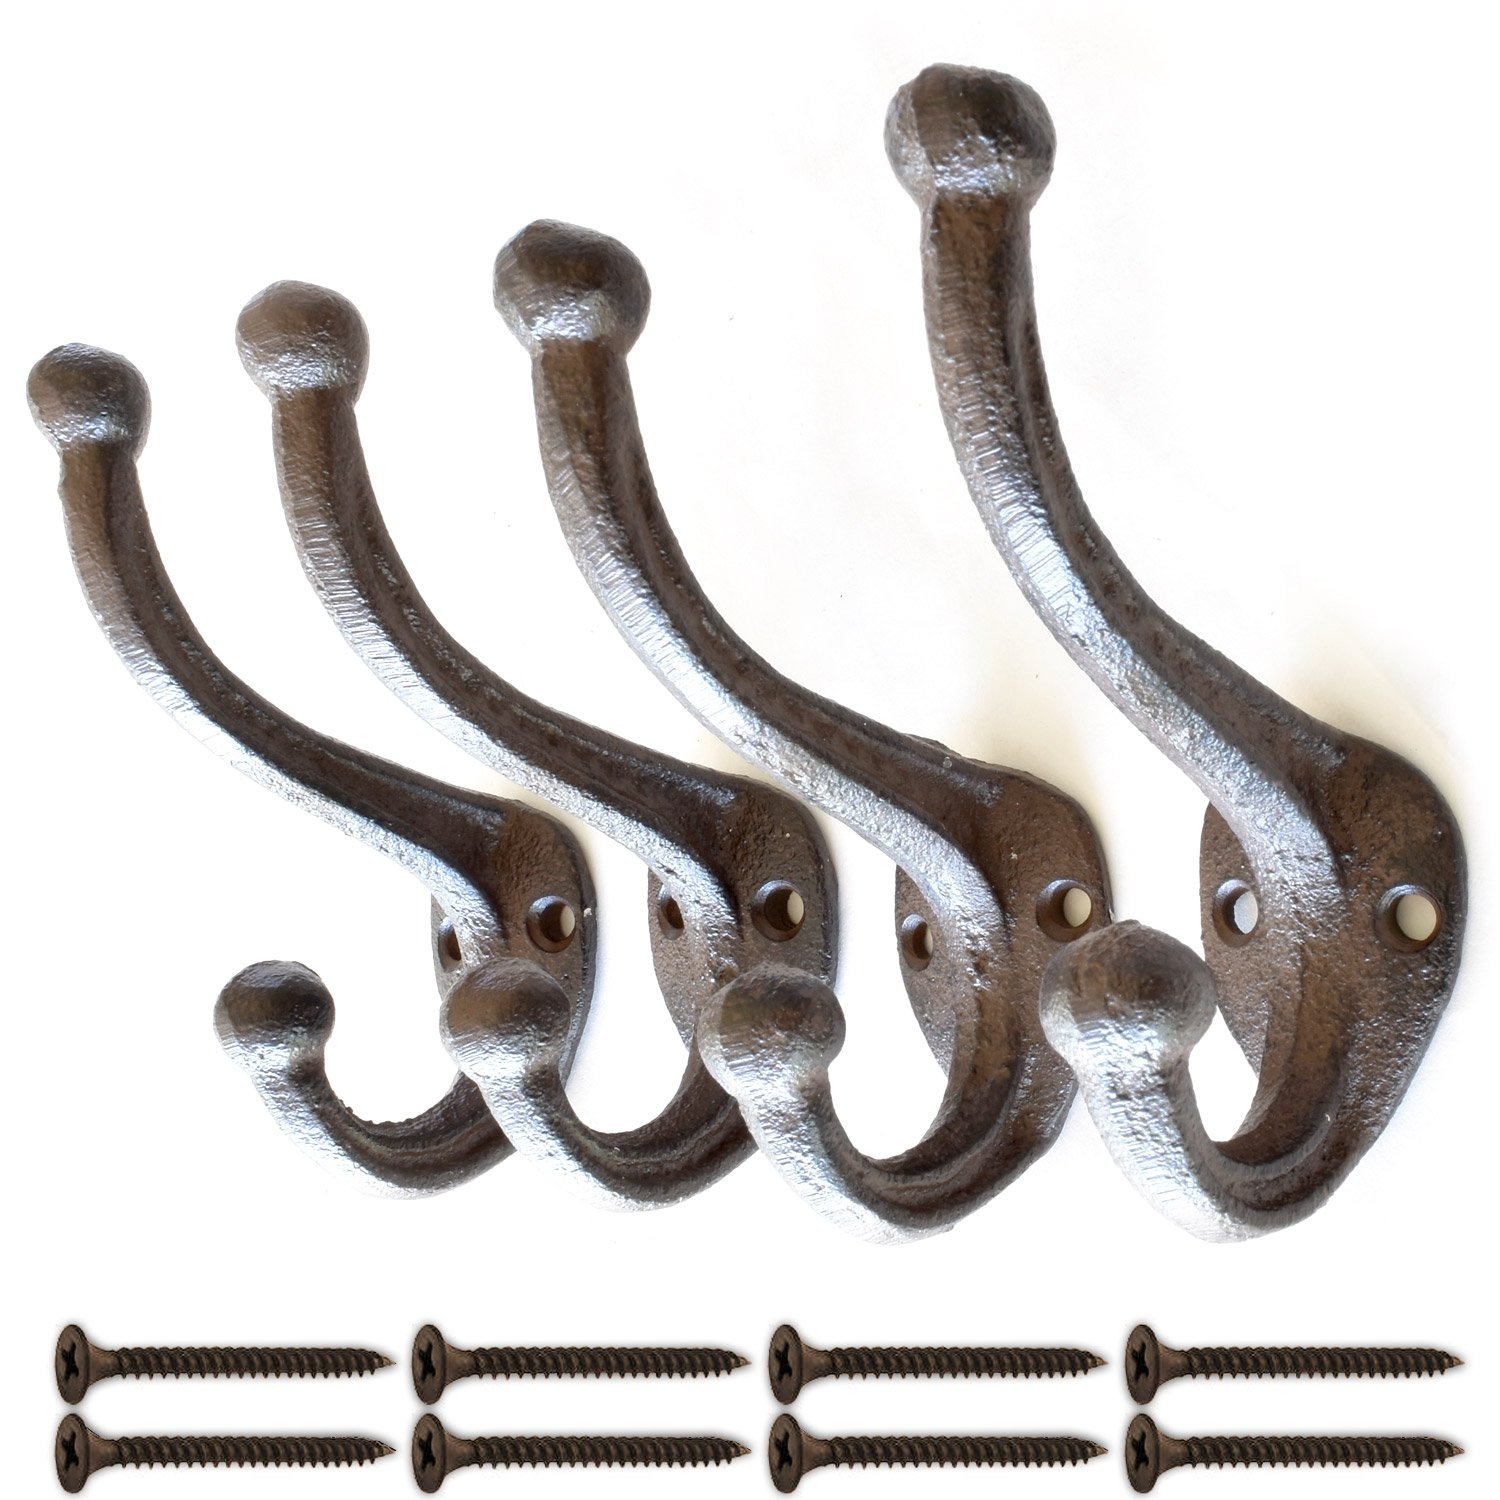 Set of 4 Rustic, Cast Iron, Wall Mounted Hooks, Vintage Inspired, Perfect for Coats, Bags, Hats, Towels, Scarfs and more | Screws Included | by My Fancy Farmhouse (Large Simple, Dark Brown/Black) Premium Home Quality